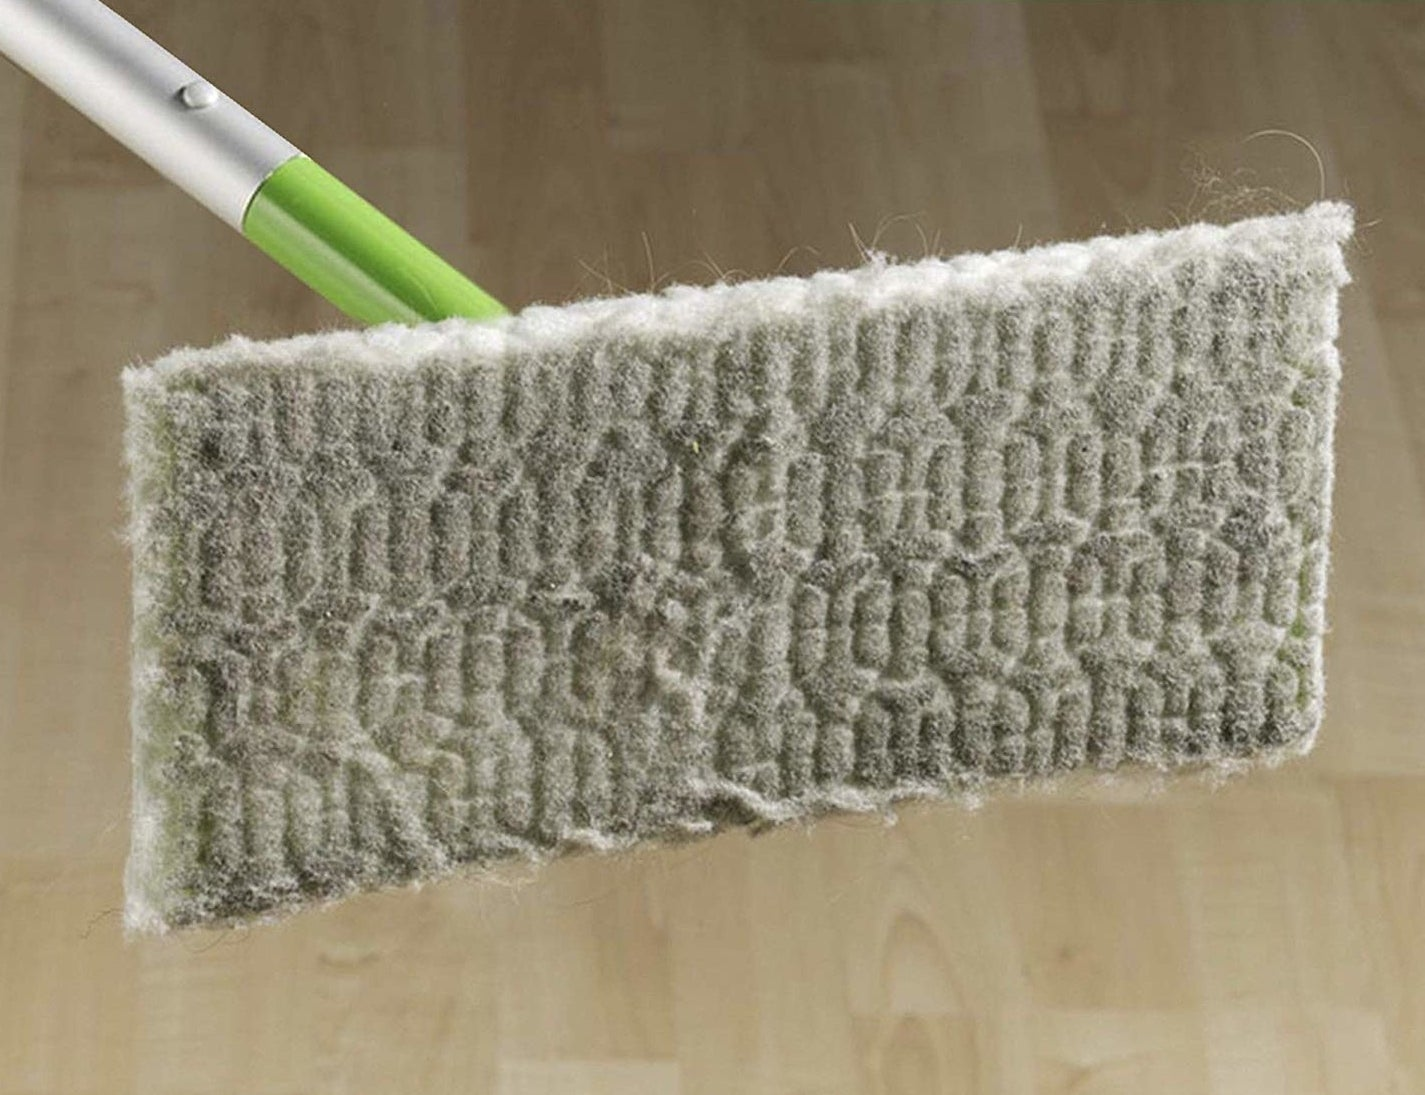 swiffer with a dry cloth full of dust